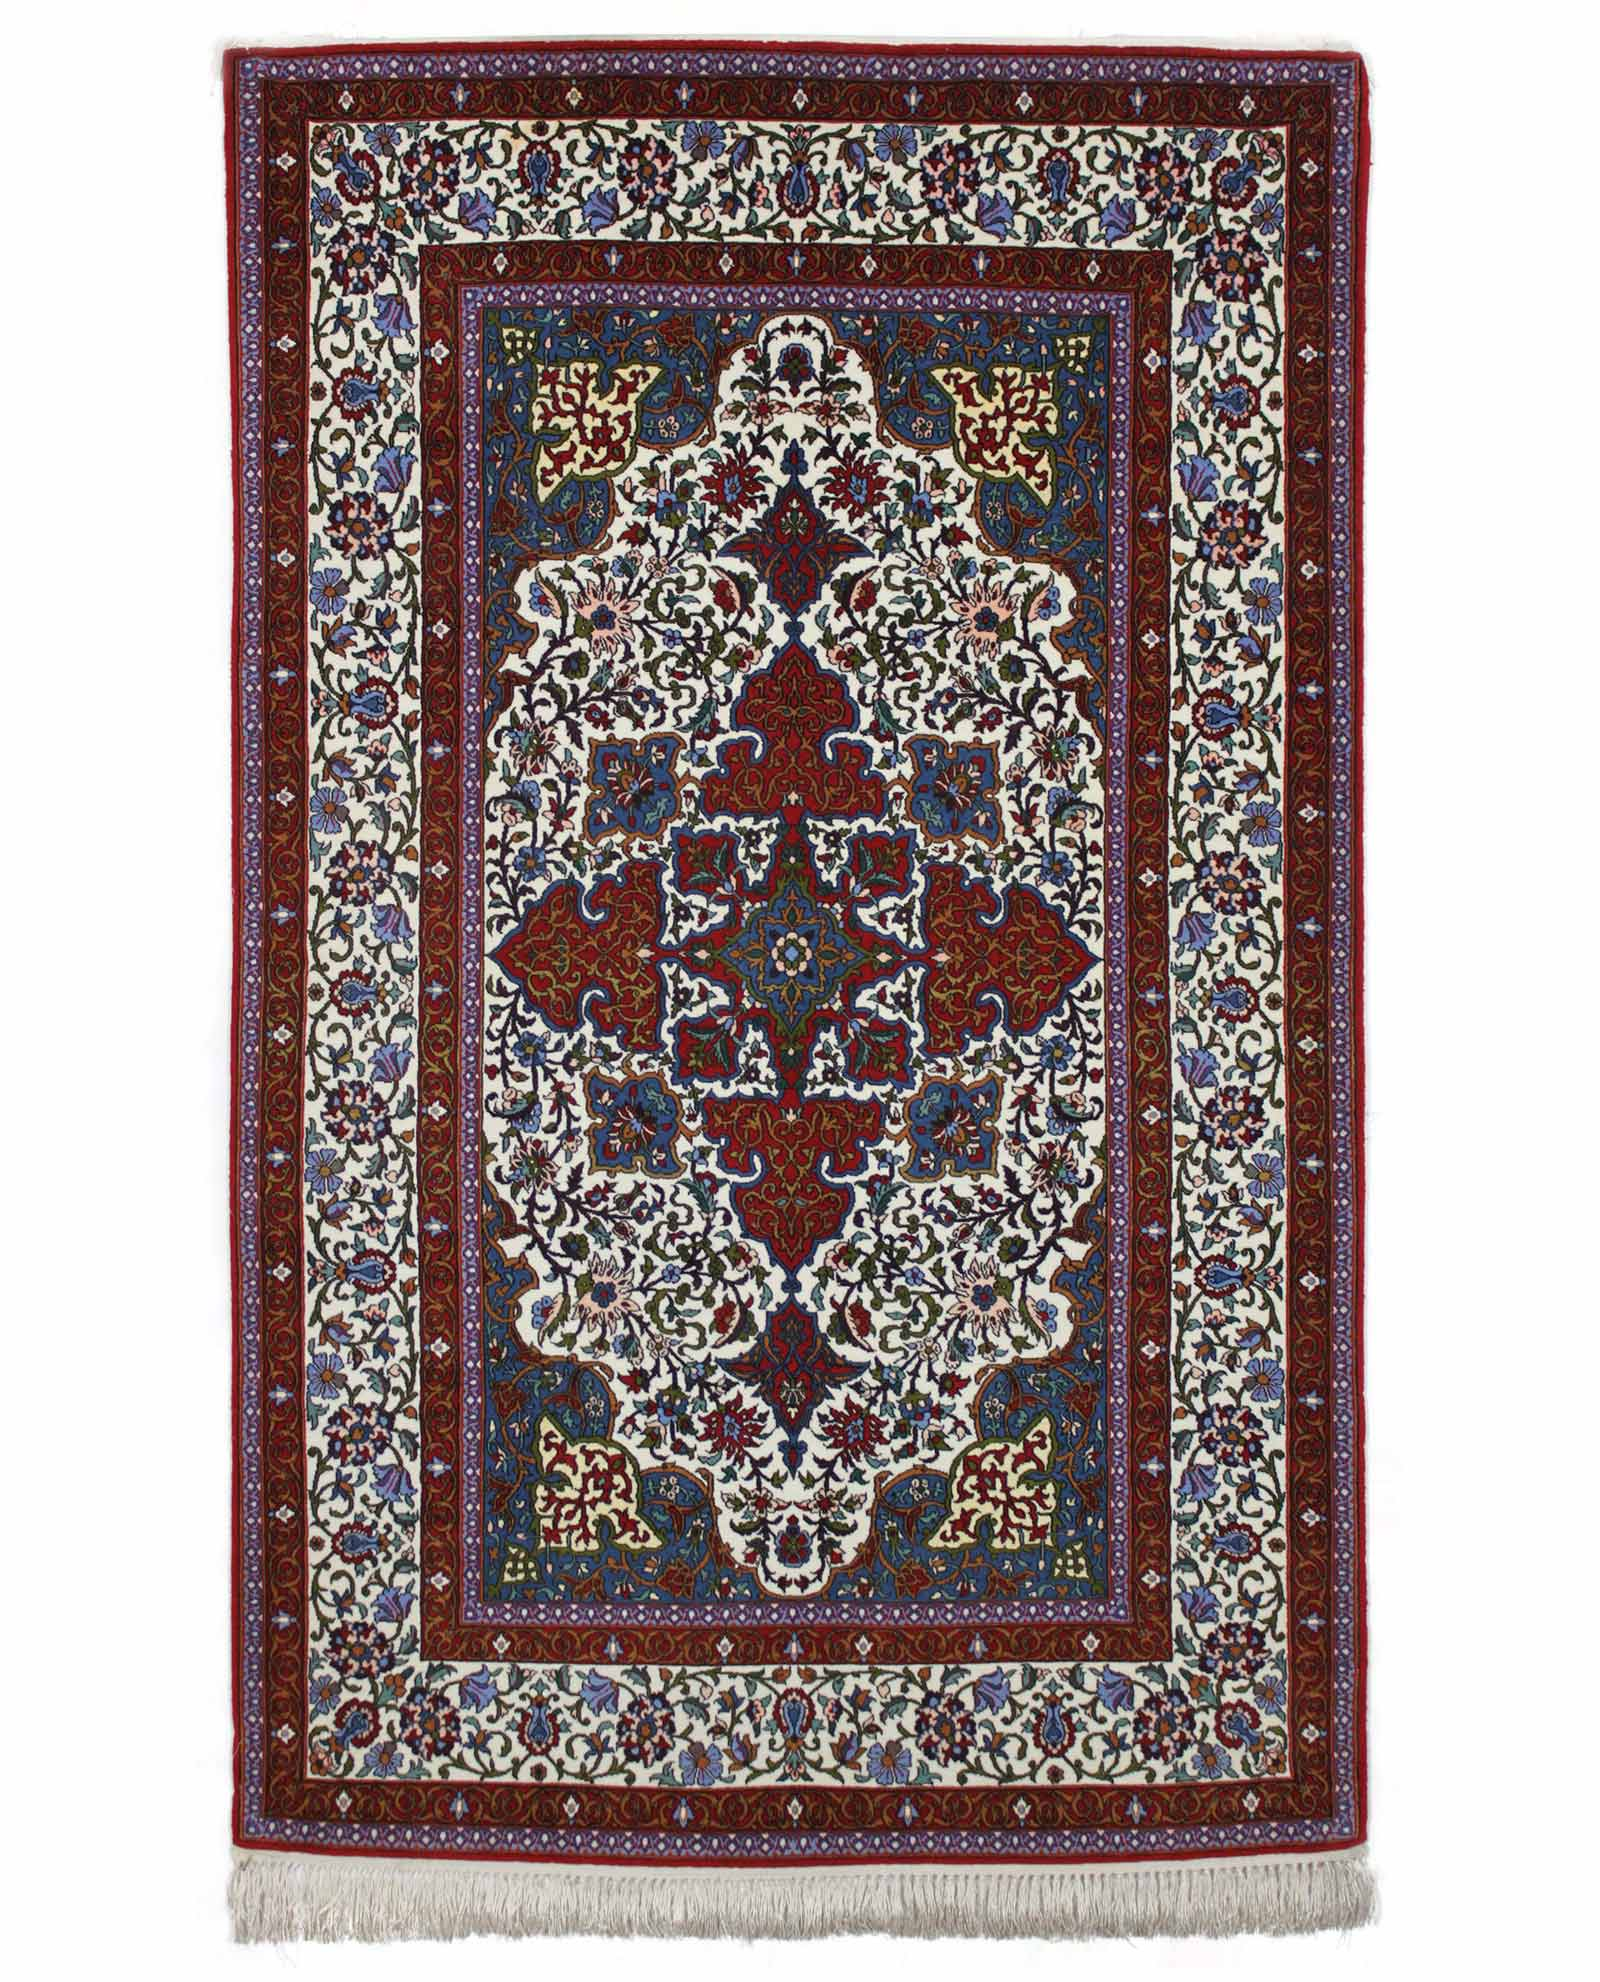 tapis persan isfahan 11083 iranian carpet. Black Bedroom Furniture Sets. Home Design Ideas